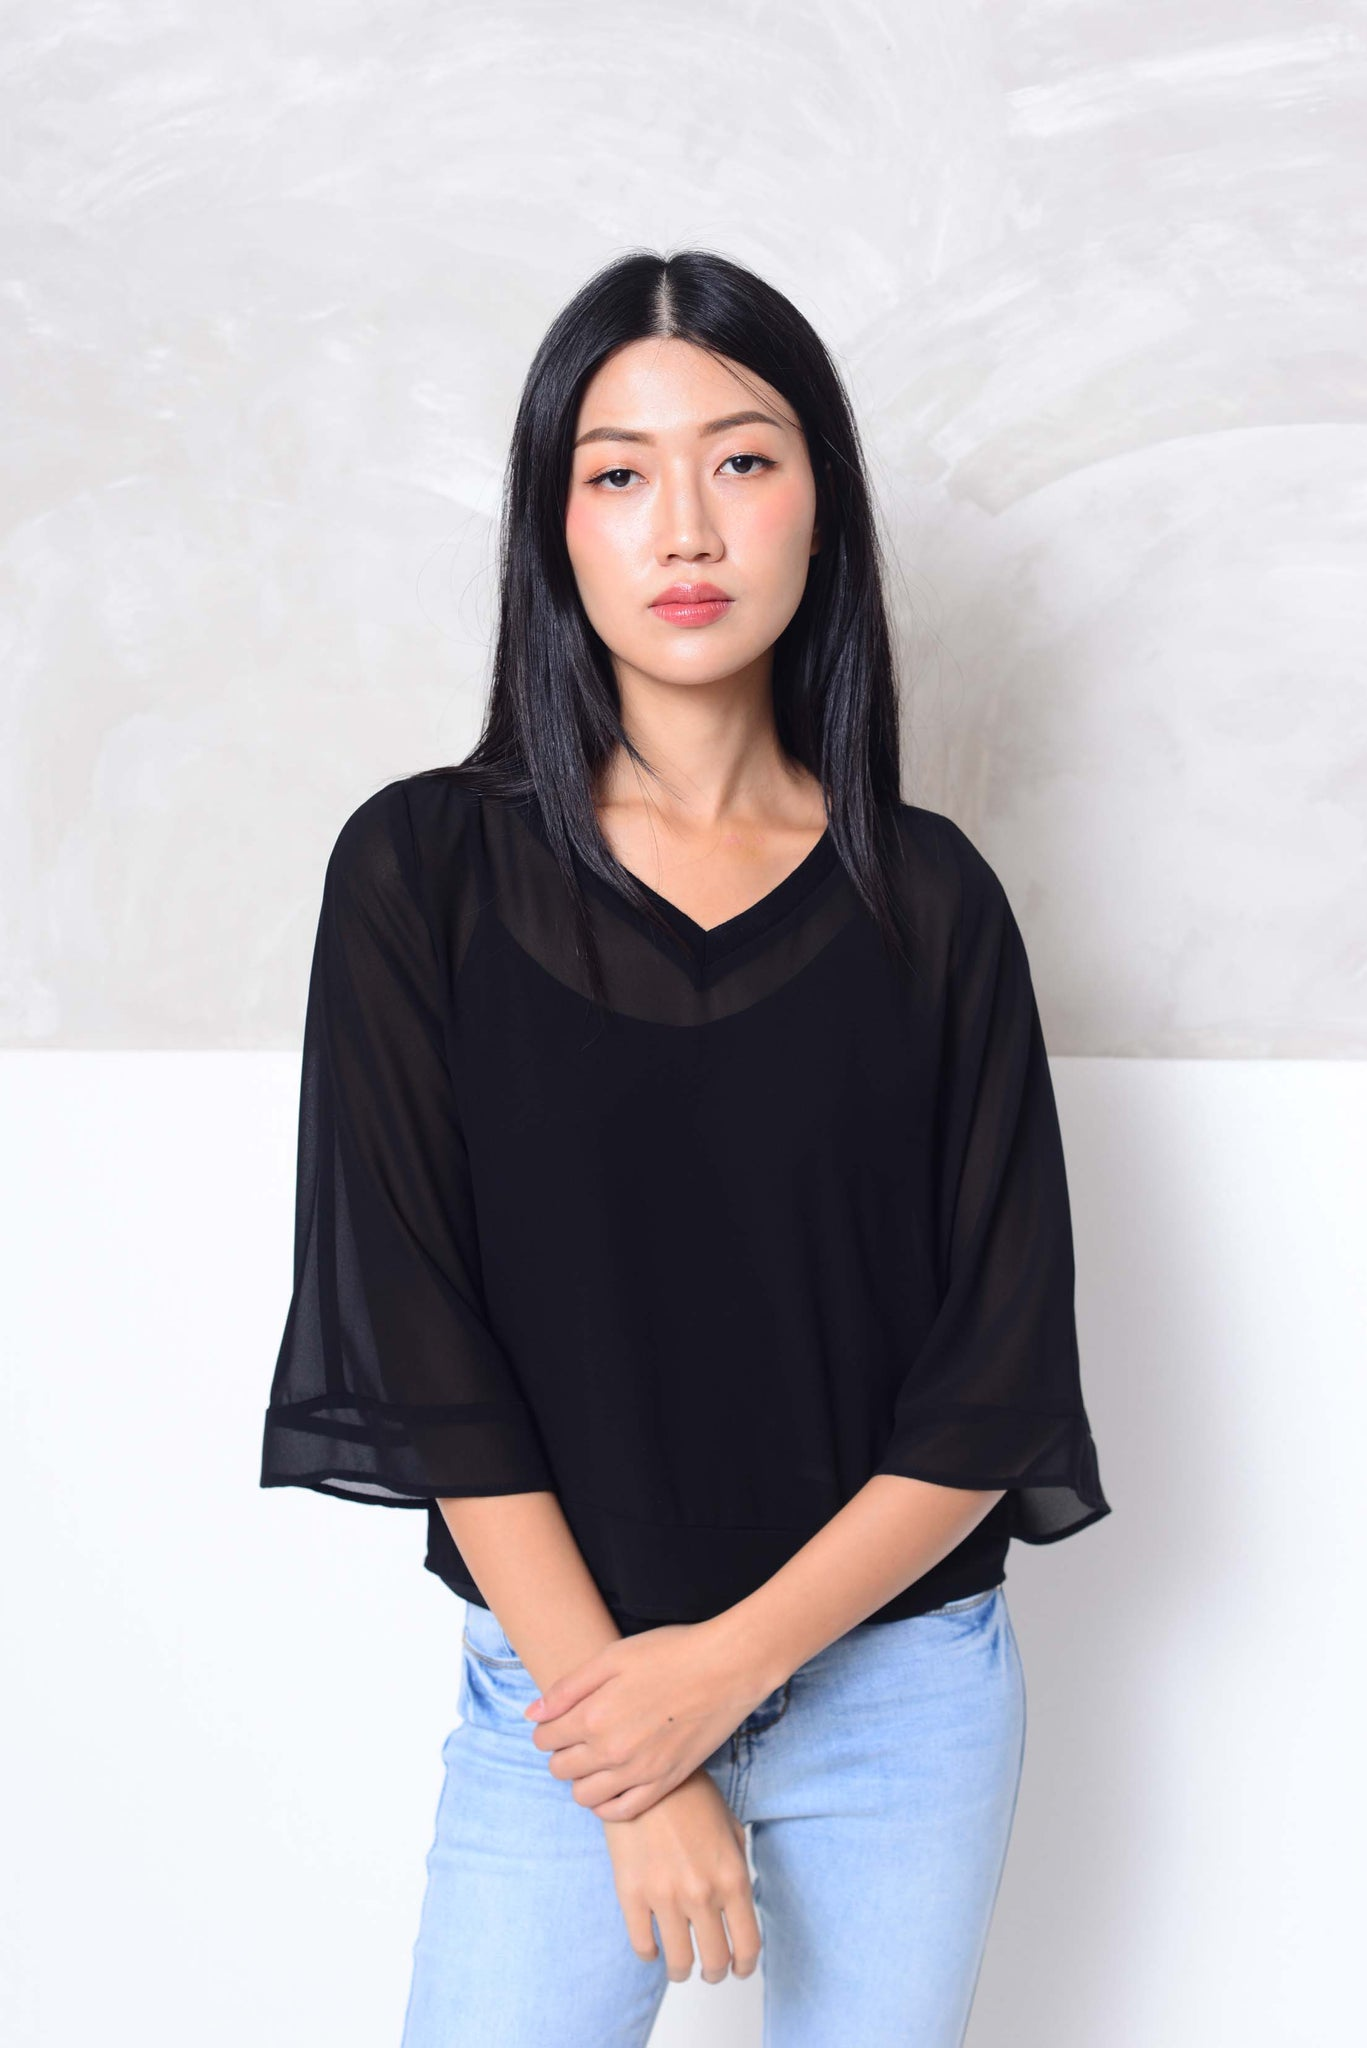 [BUY]Basics-Chiffon 2-layer blouse in black